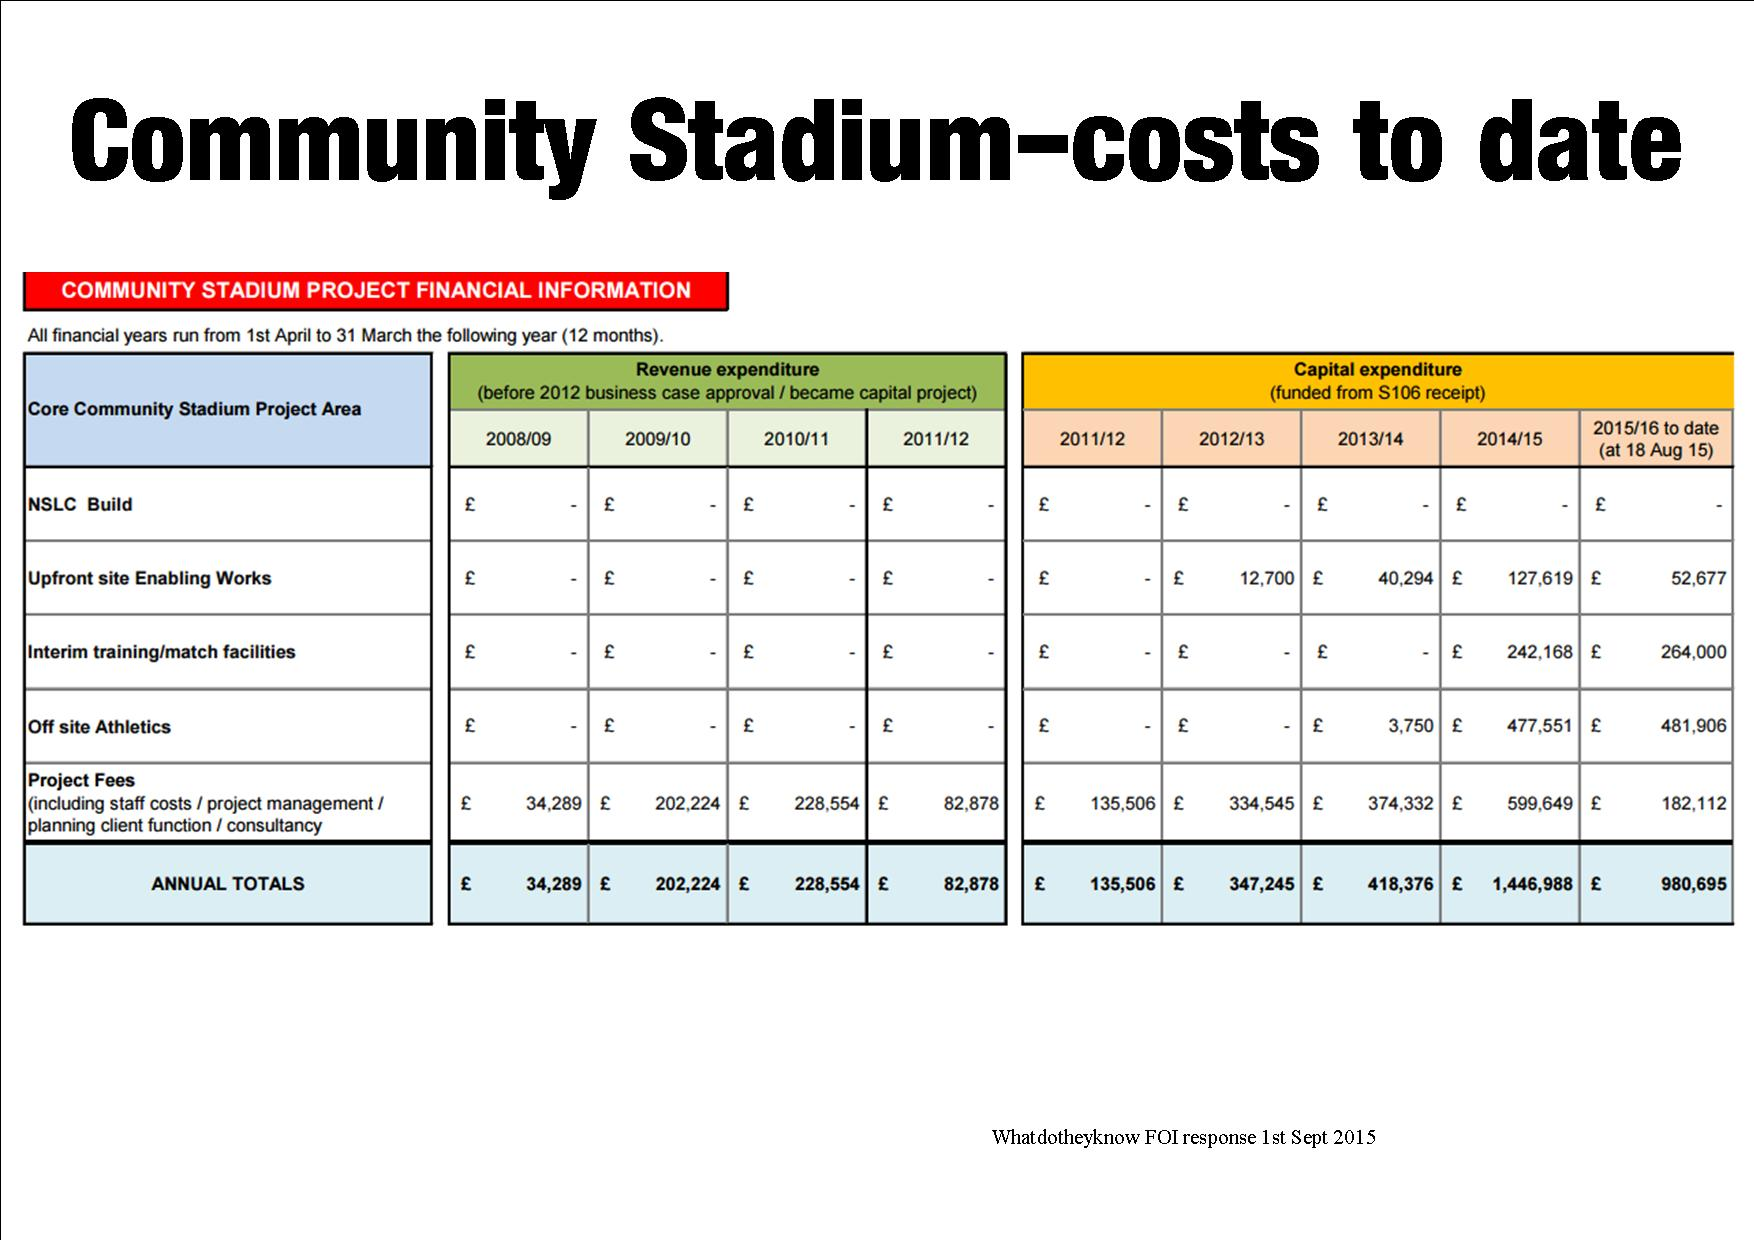 Community Stadium costs to 18th Aug 2015